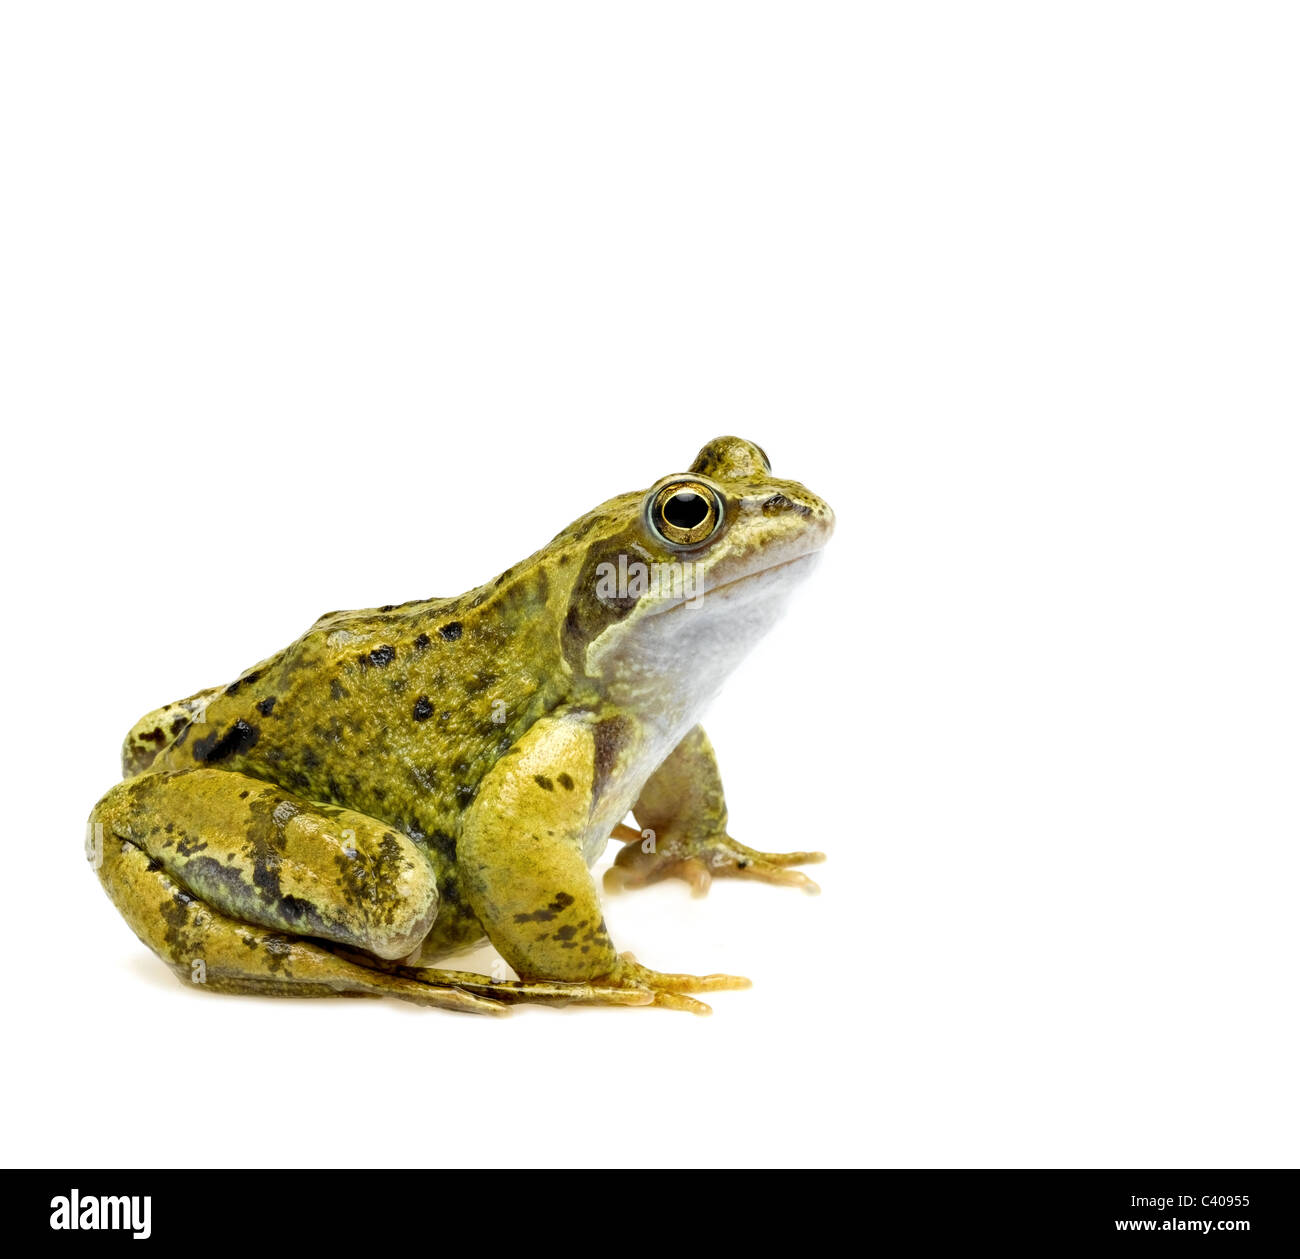 common frog - Stock Image